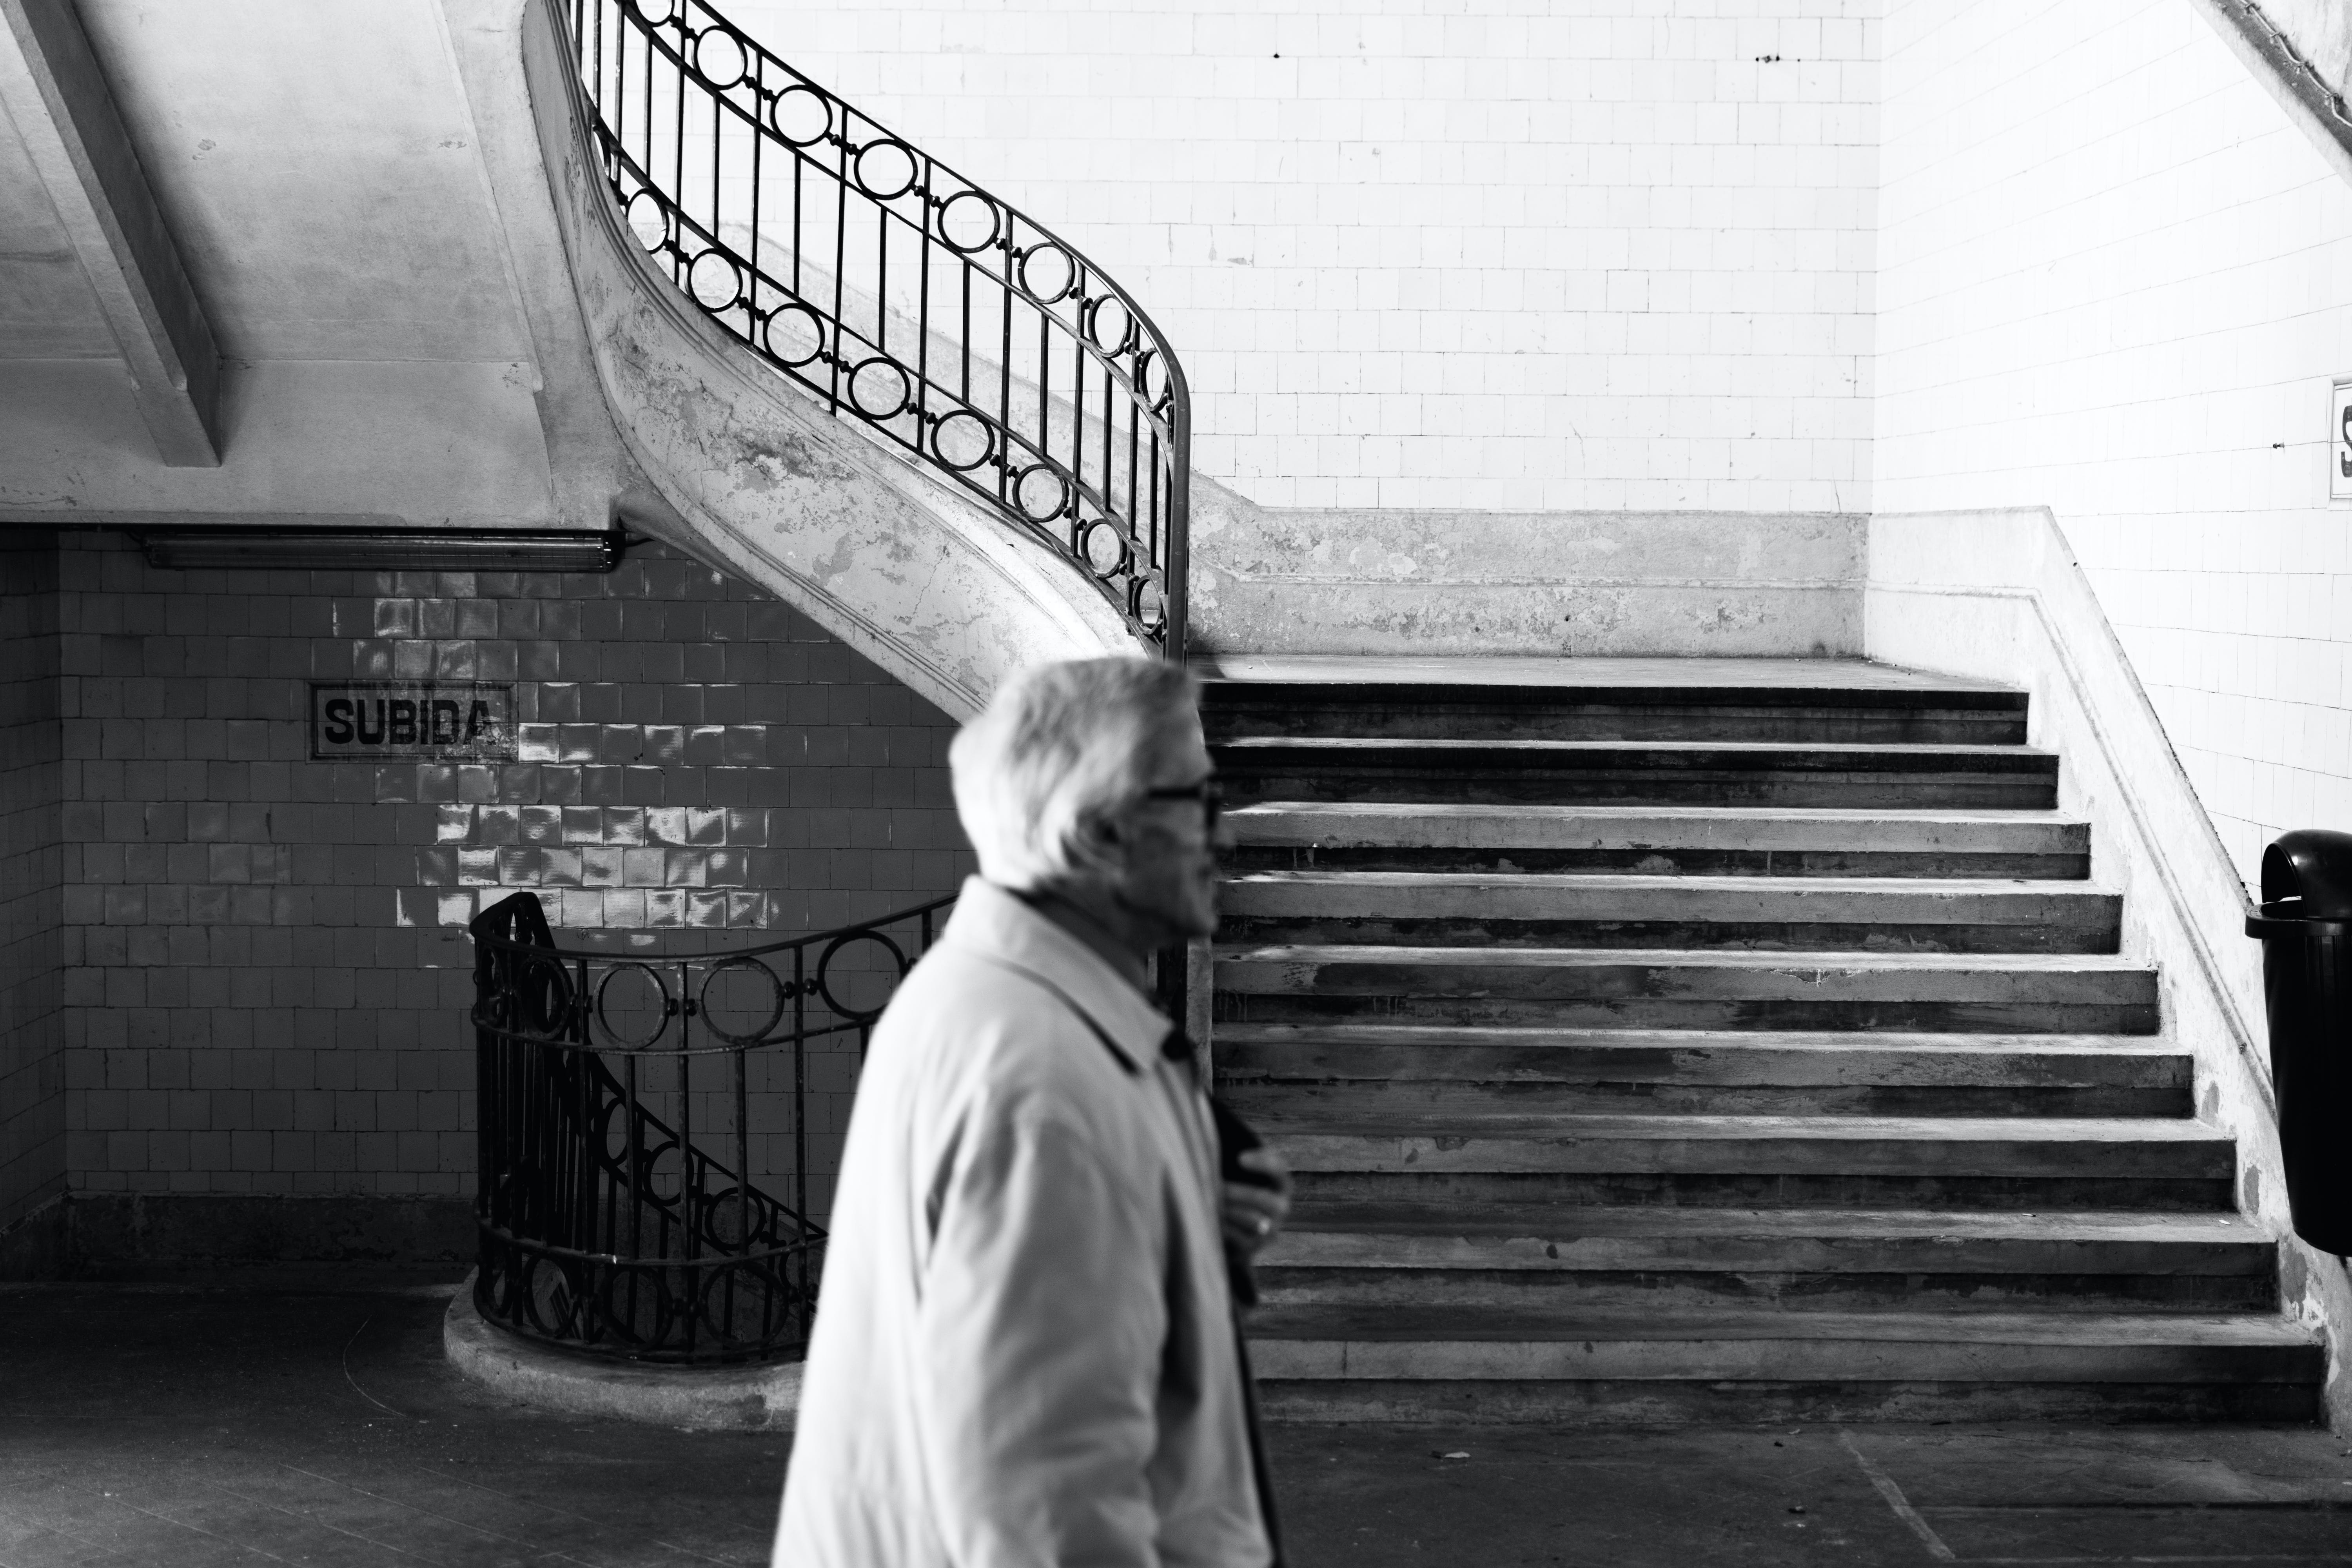 Grayscale Photography of Man Walking Near Staircase